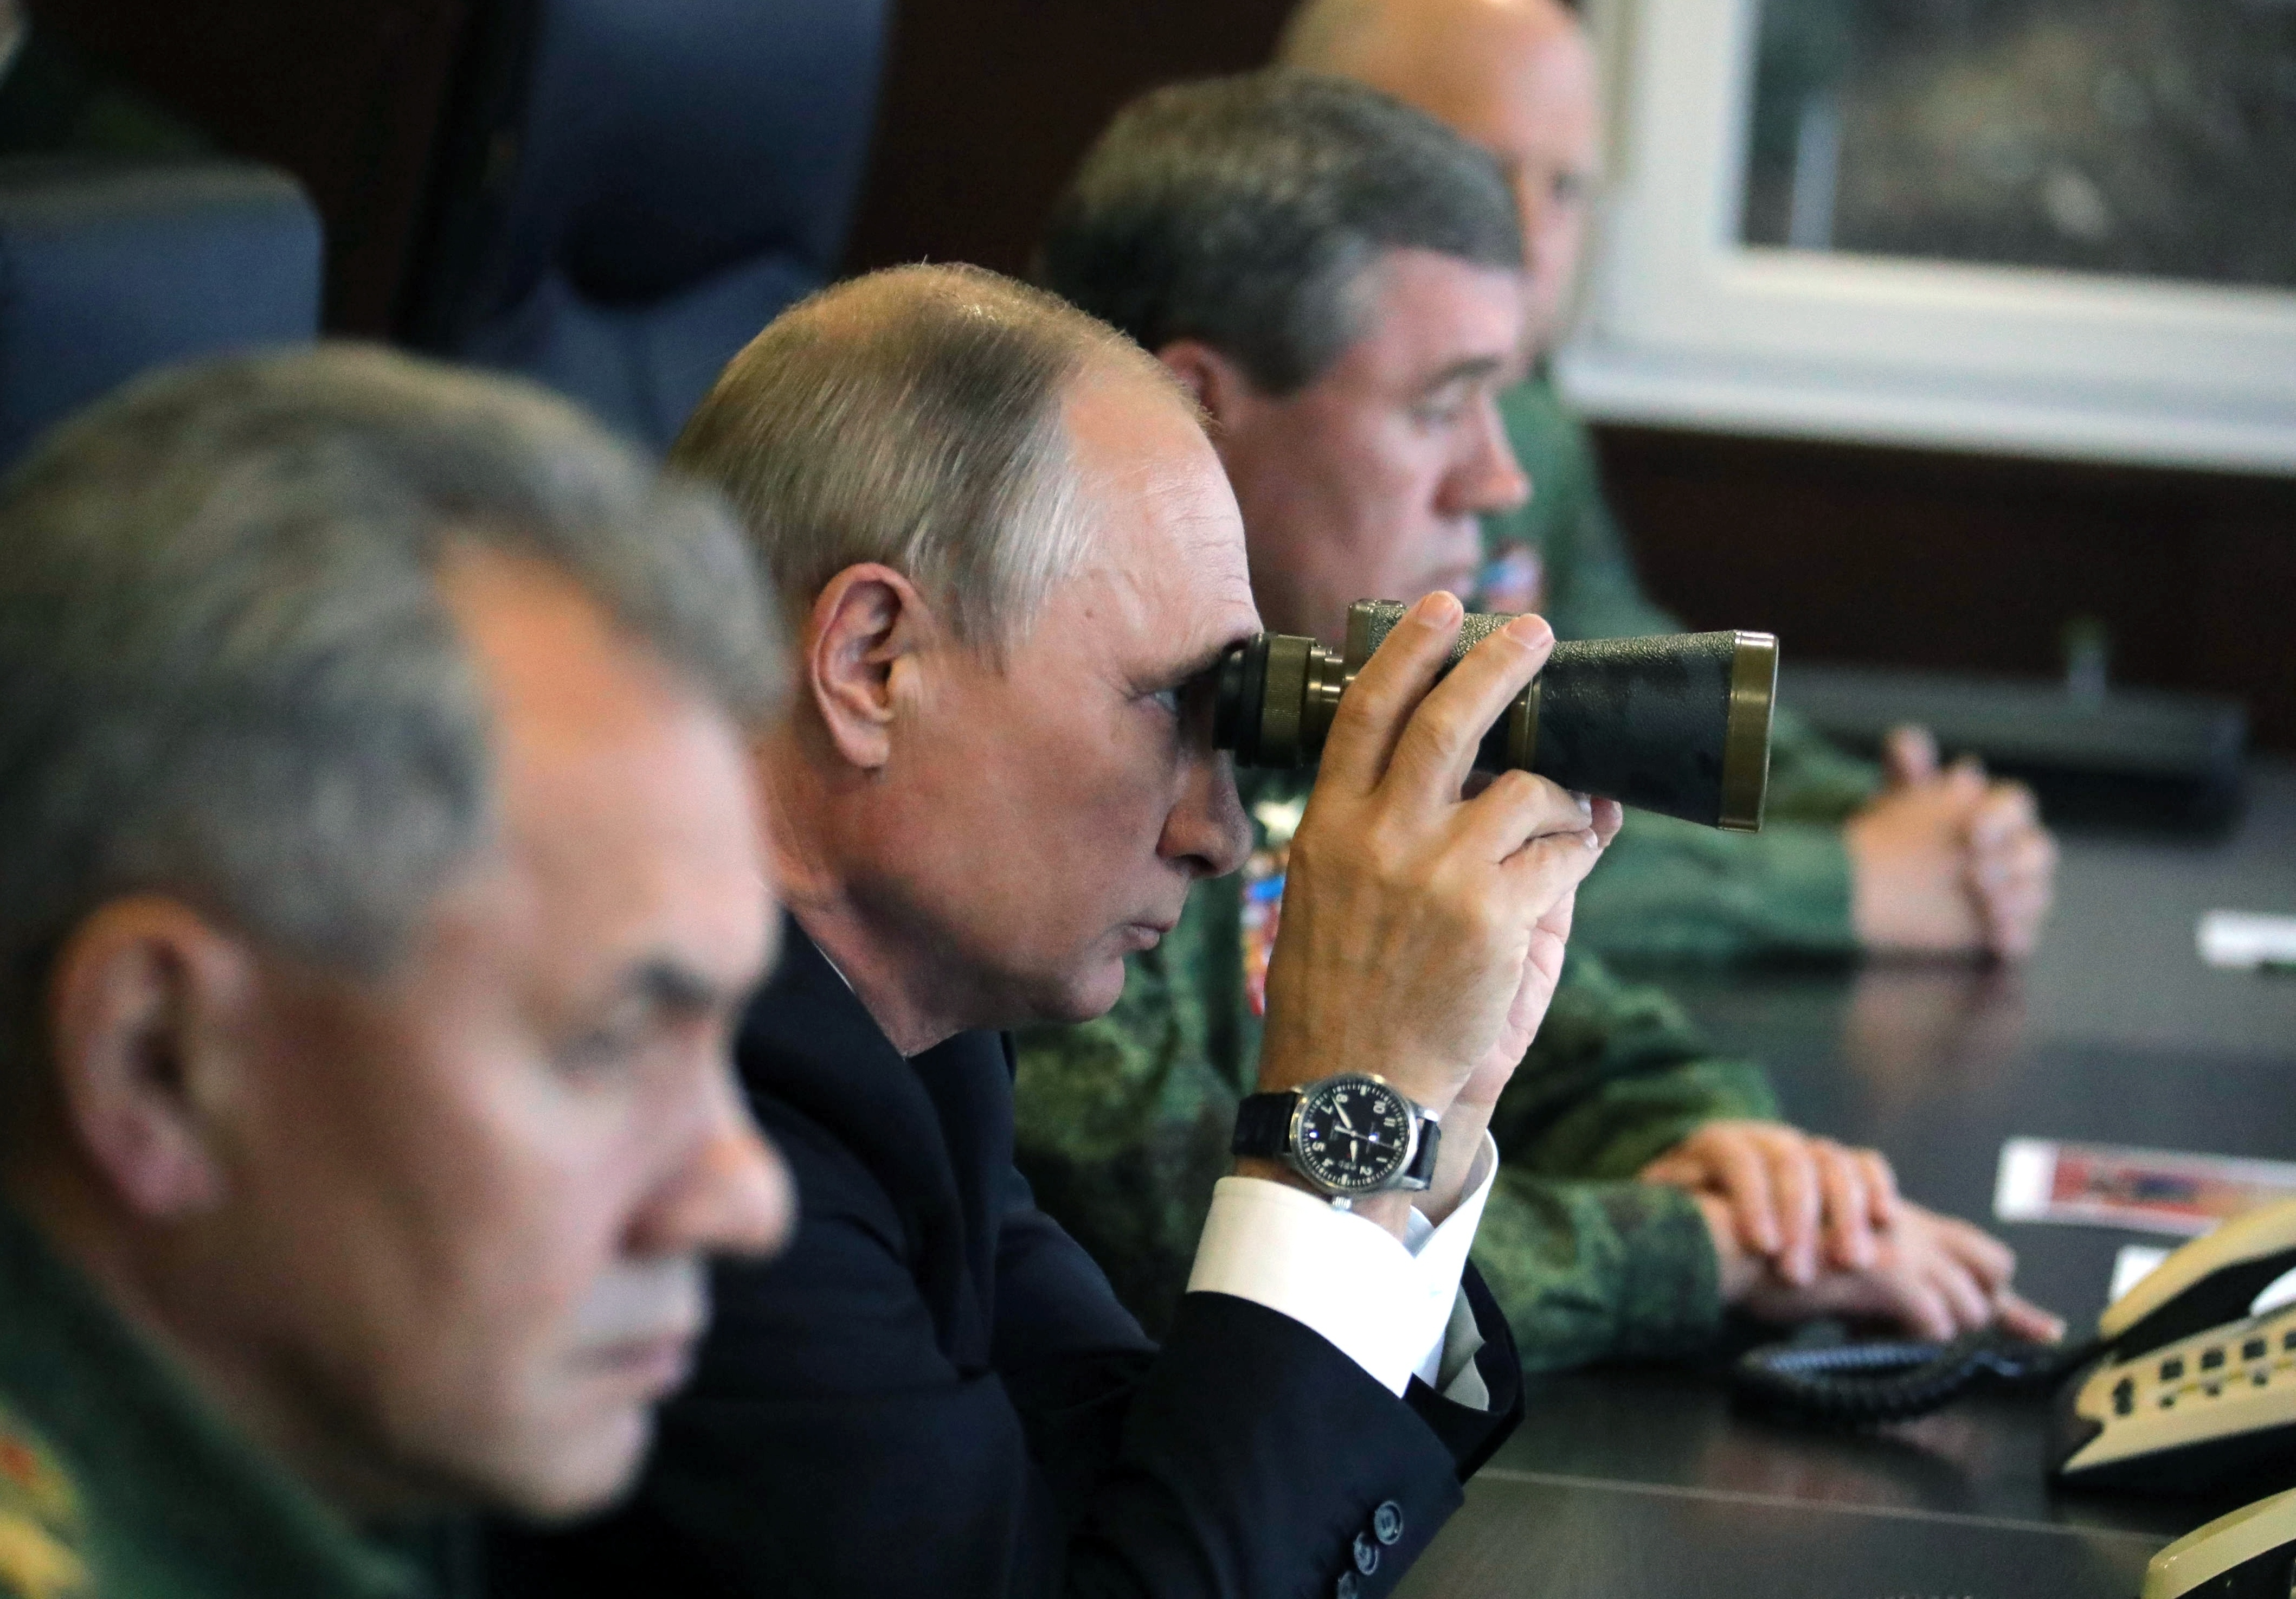 Russian President Vladimir Putin, center, Defence Minister Sergei Shoigu, left, and Chief of the General Staff of the Russian Armed Forces Valery Gerasimov, right, watch a military exercise at a training ground at the Luzhsky Range, near St. Petersburg, Russia, on Sept. 18, 2017. (Mikhail Klimentyev/Sputnik/Kremlin Pool Photo via AP)